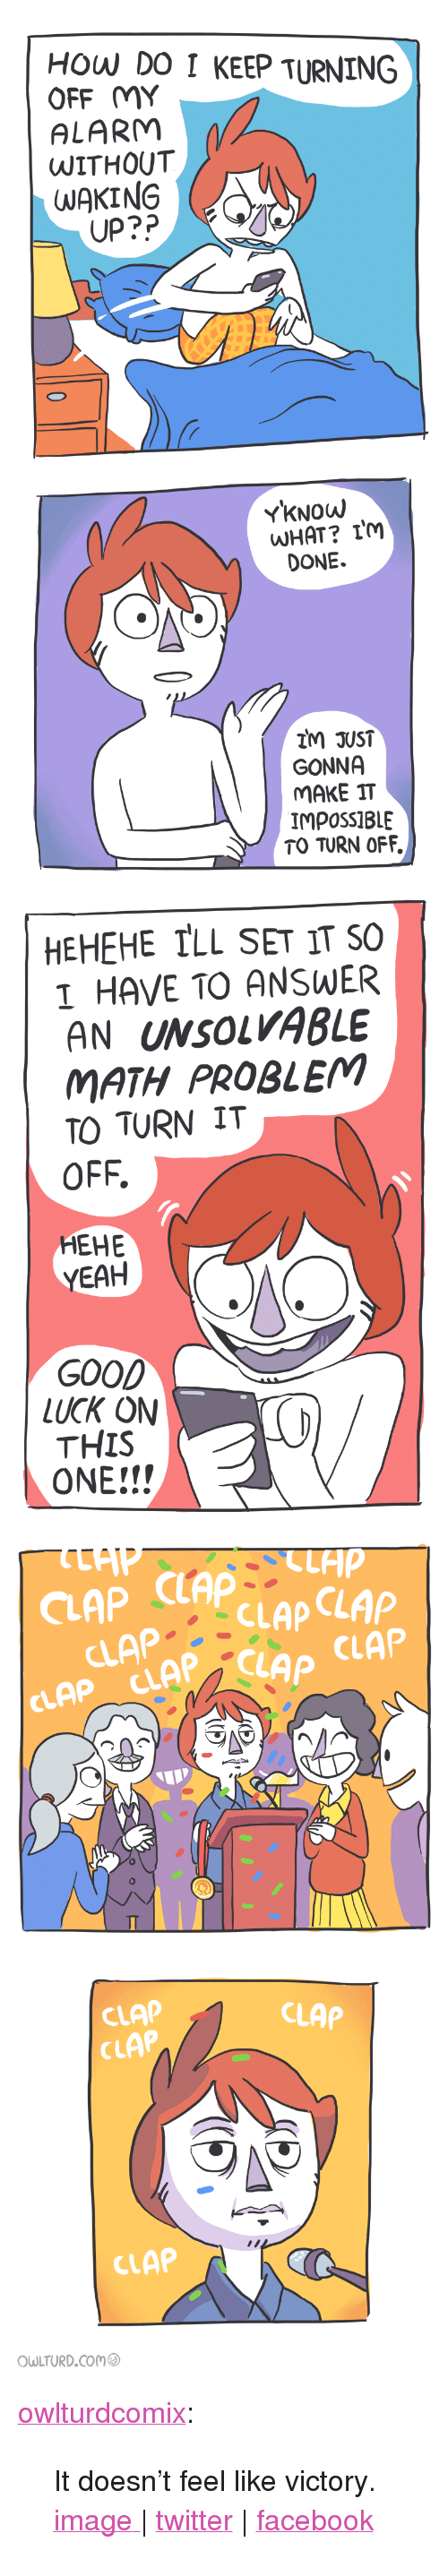 """Shenanigansen: HOW DO I KEEP TURNING  OFF MY  ALARM  UITHOUT  WAKING  UP??   YKNowW  DONE.  IM JUST  GONNA  MAKE IT  IMPOSSIBLE  TO TURN OFF   HEHEHE TLL SET IT SO  I HAVE TO ANSWER  AN UNSOLVABLE  MATH PROBLEM  TO TURN IT  OFF.  HEHE  YEAH  GOOD  LUCK ON  THIS  ONE!!!   CLAP CLAP  CLAPCLAPC  CLAP CLAPCLAP CLAP  2   CLAP  CLAP  CLAP  CLAP  OWLTURD.com <p><a href=""""http://owlturd.com/post/129567093839/it-doesnt-feel-like-victory-image-twitter"""" class=""""tumblr_blog"""" target=""""_blank"""">owlturdcomix</a>:</p>  <blockquote><p>It doesn't feel like victory.</p><p><a href=""""http://i.imgur.com/YydO7vt.png"""" target=""""_blank"""">image</a><a href=""""http://i.imgur.com/8yPZ0o9.png"""" target=""""_blank""""> </a>